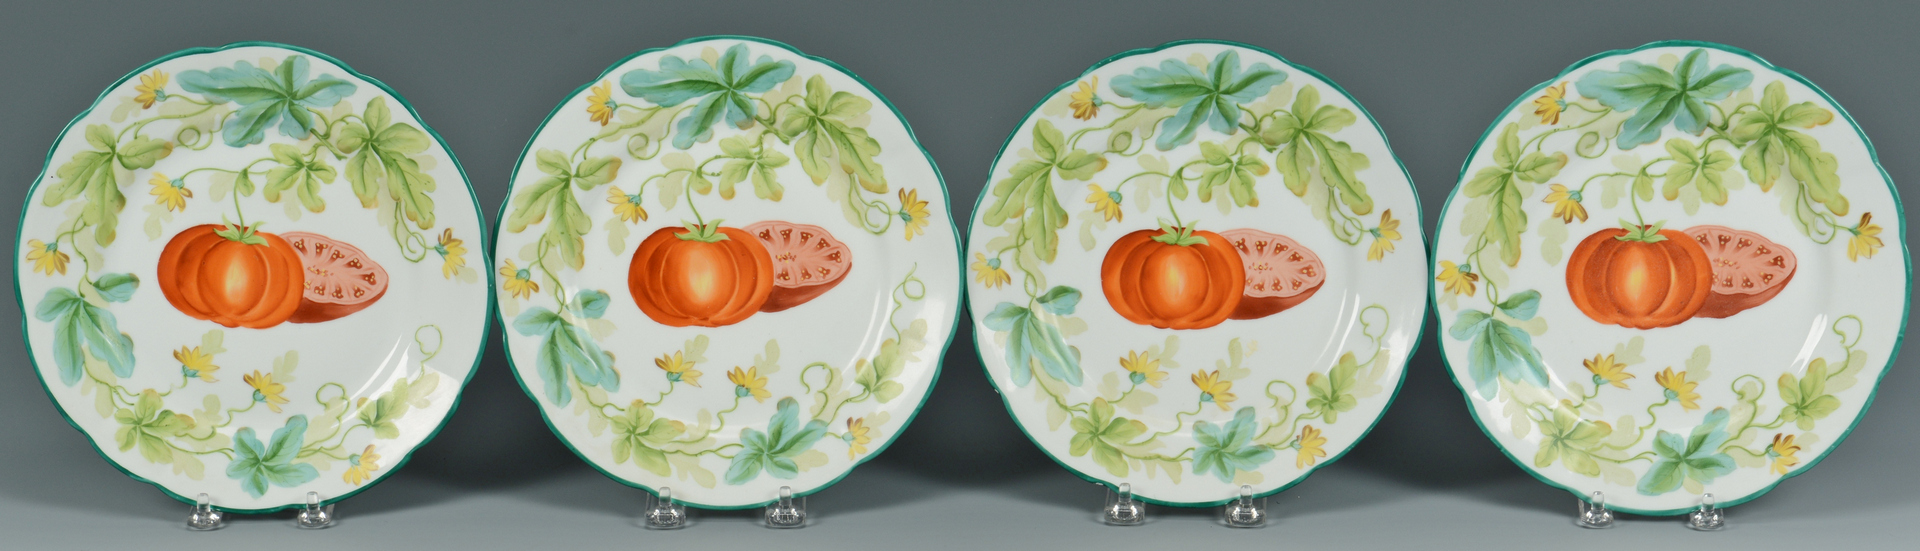 Lot 3088349: Minton Bamboo ware, Majolica fish pitcher & plates